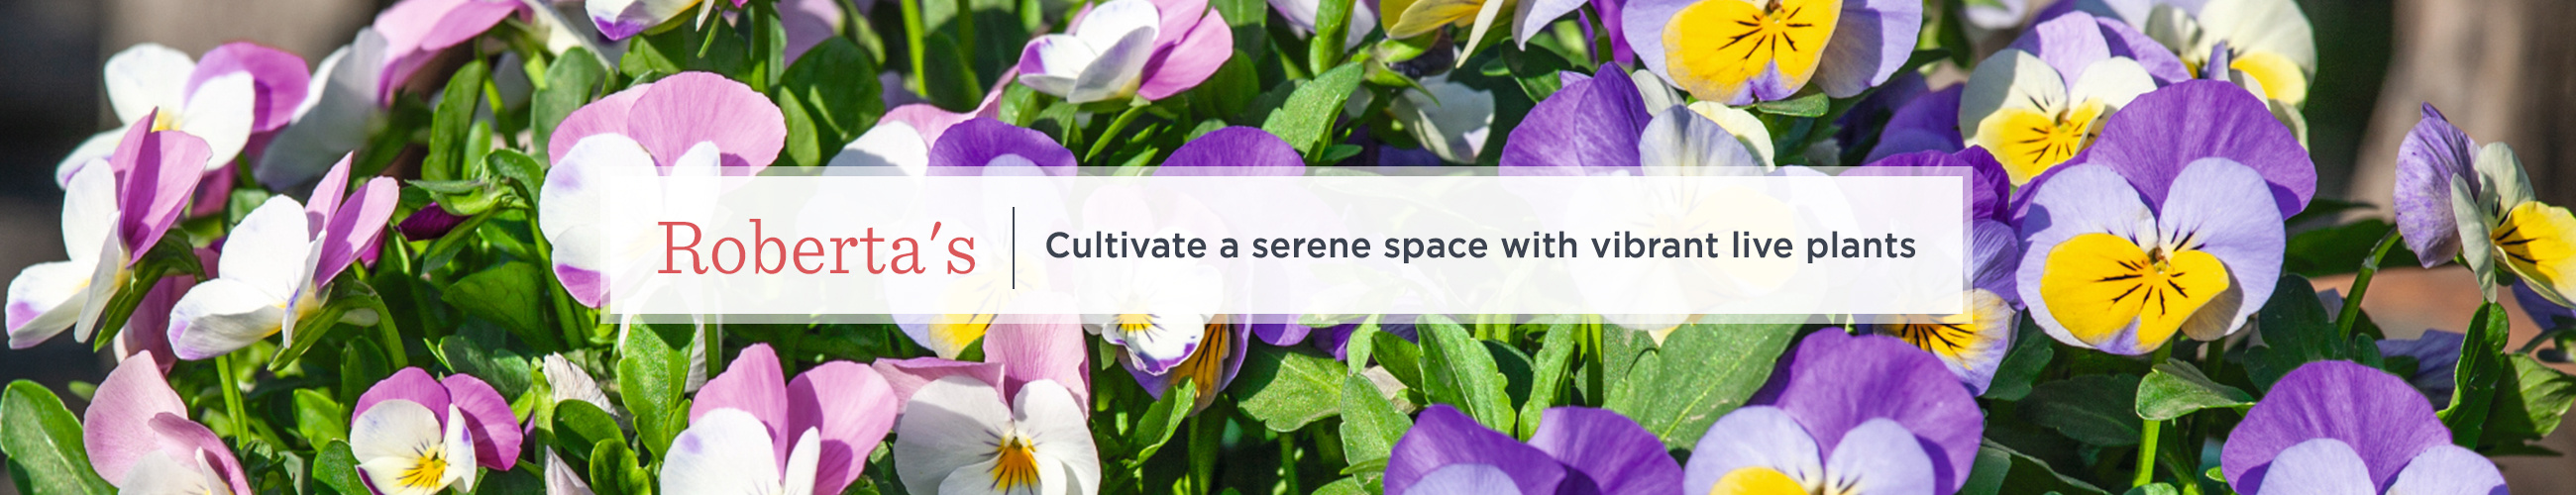 Roberta's.  Cultivate a serene space with vibrant live plants